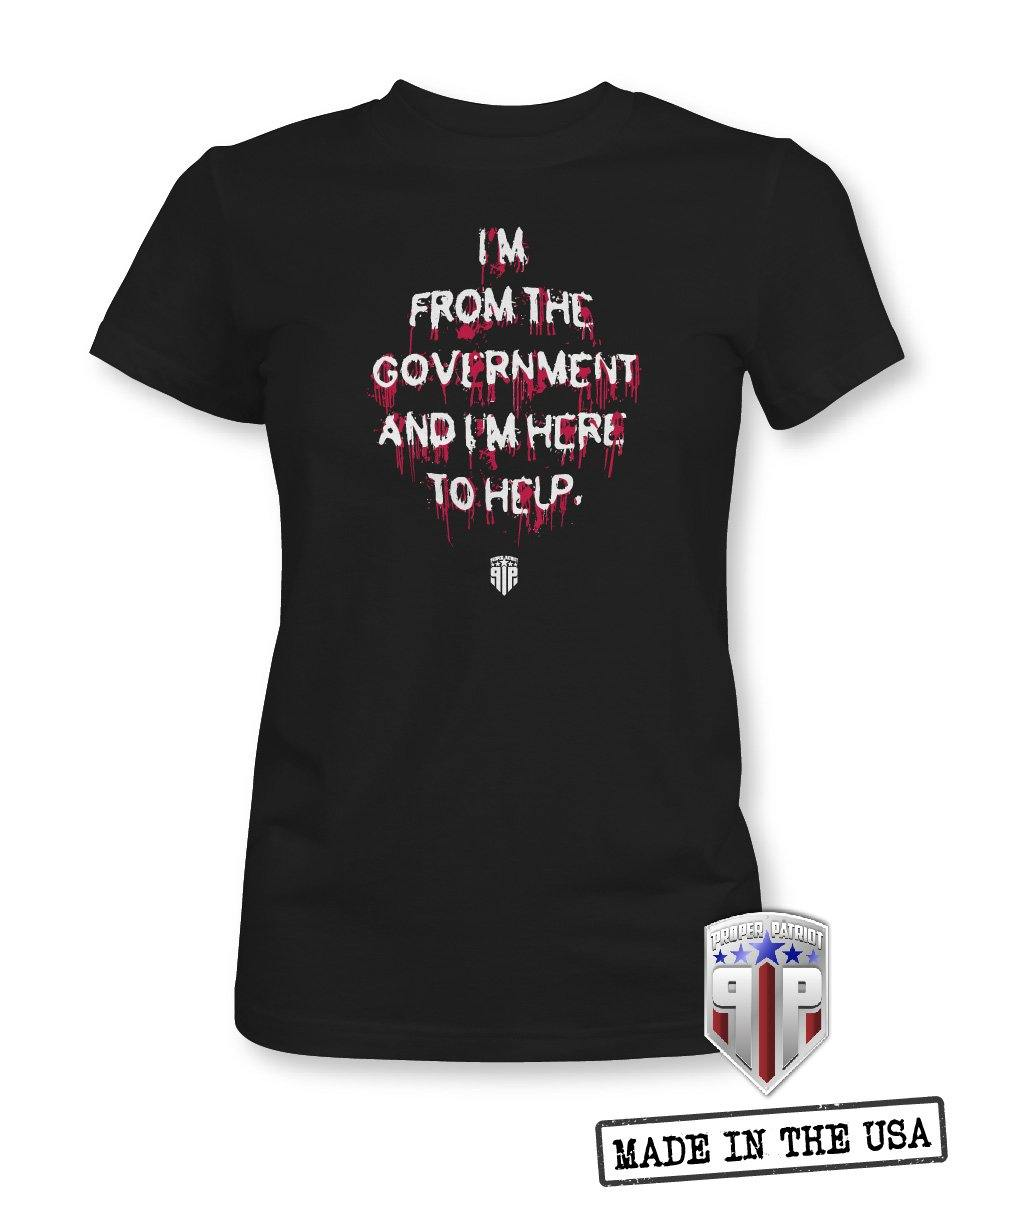 Nine Most Terrifying Words - I'm From the Government - Reagan Halloween Shirts - Women's Patriotic Shirts